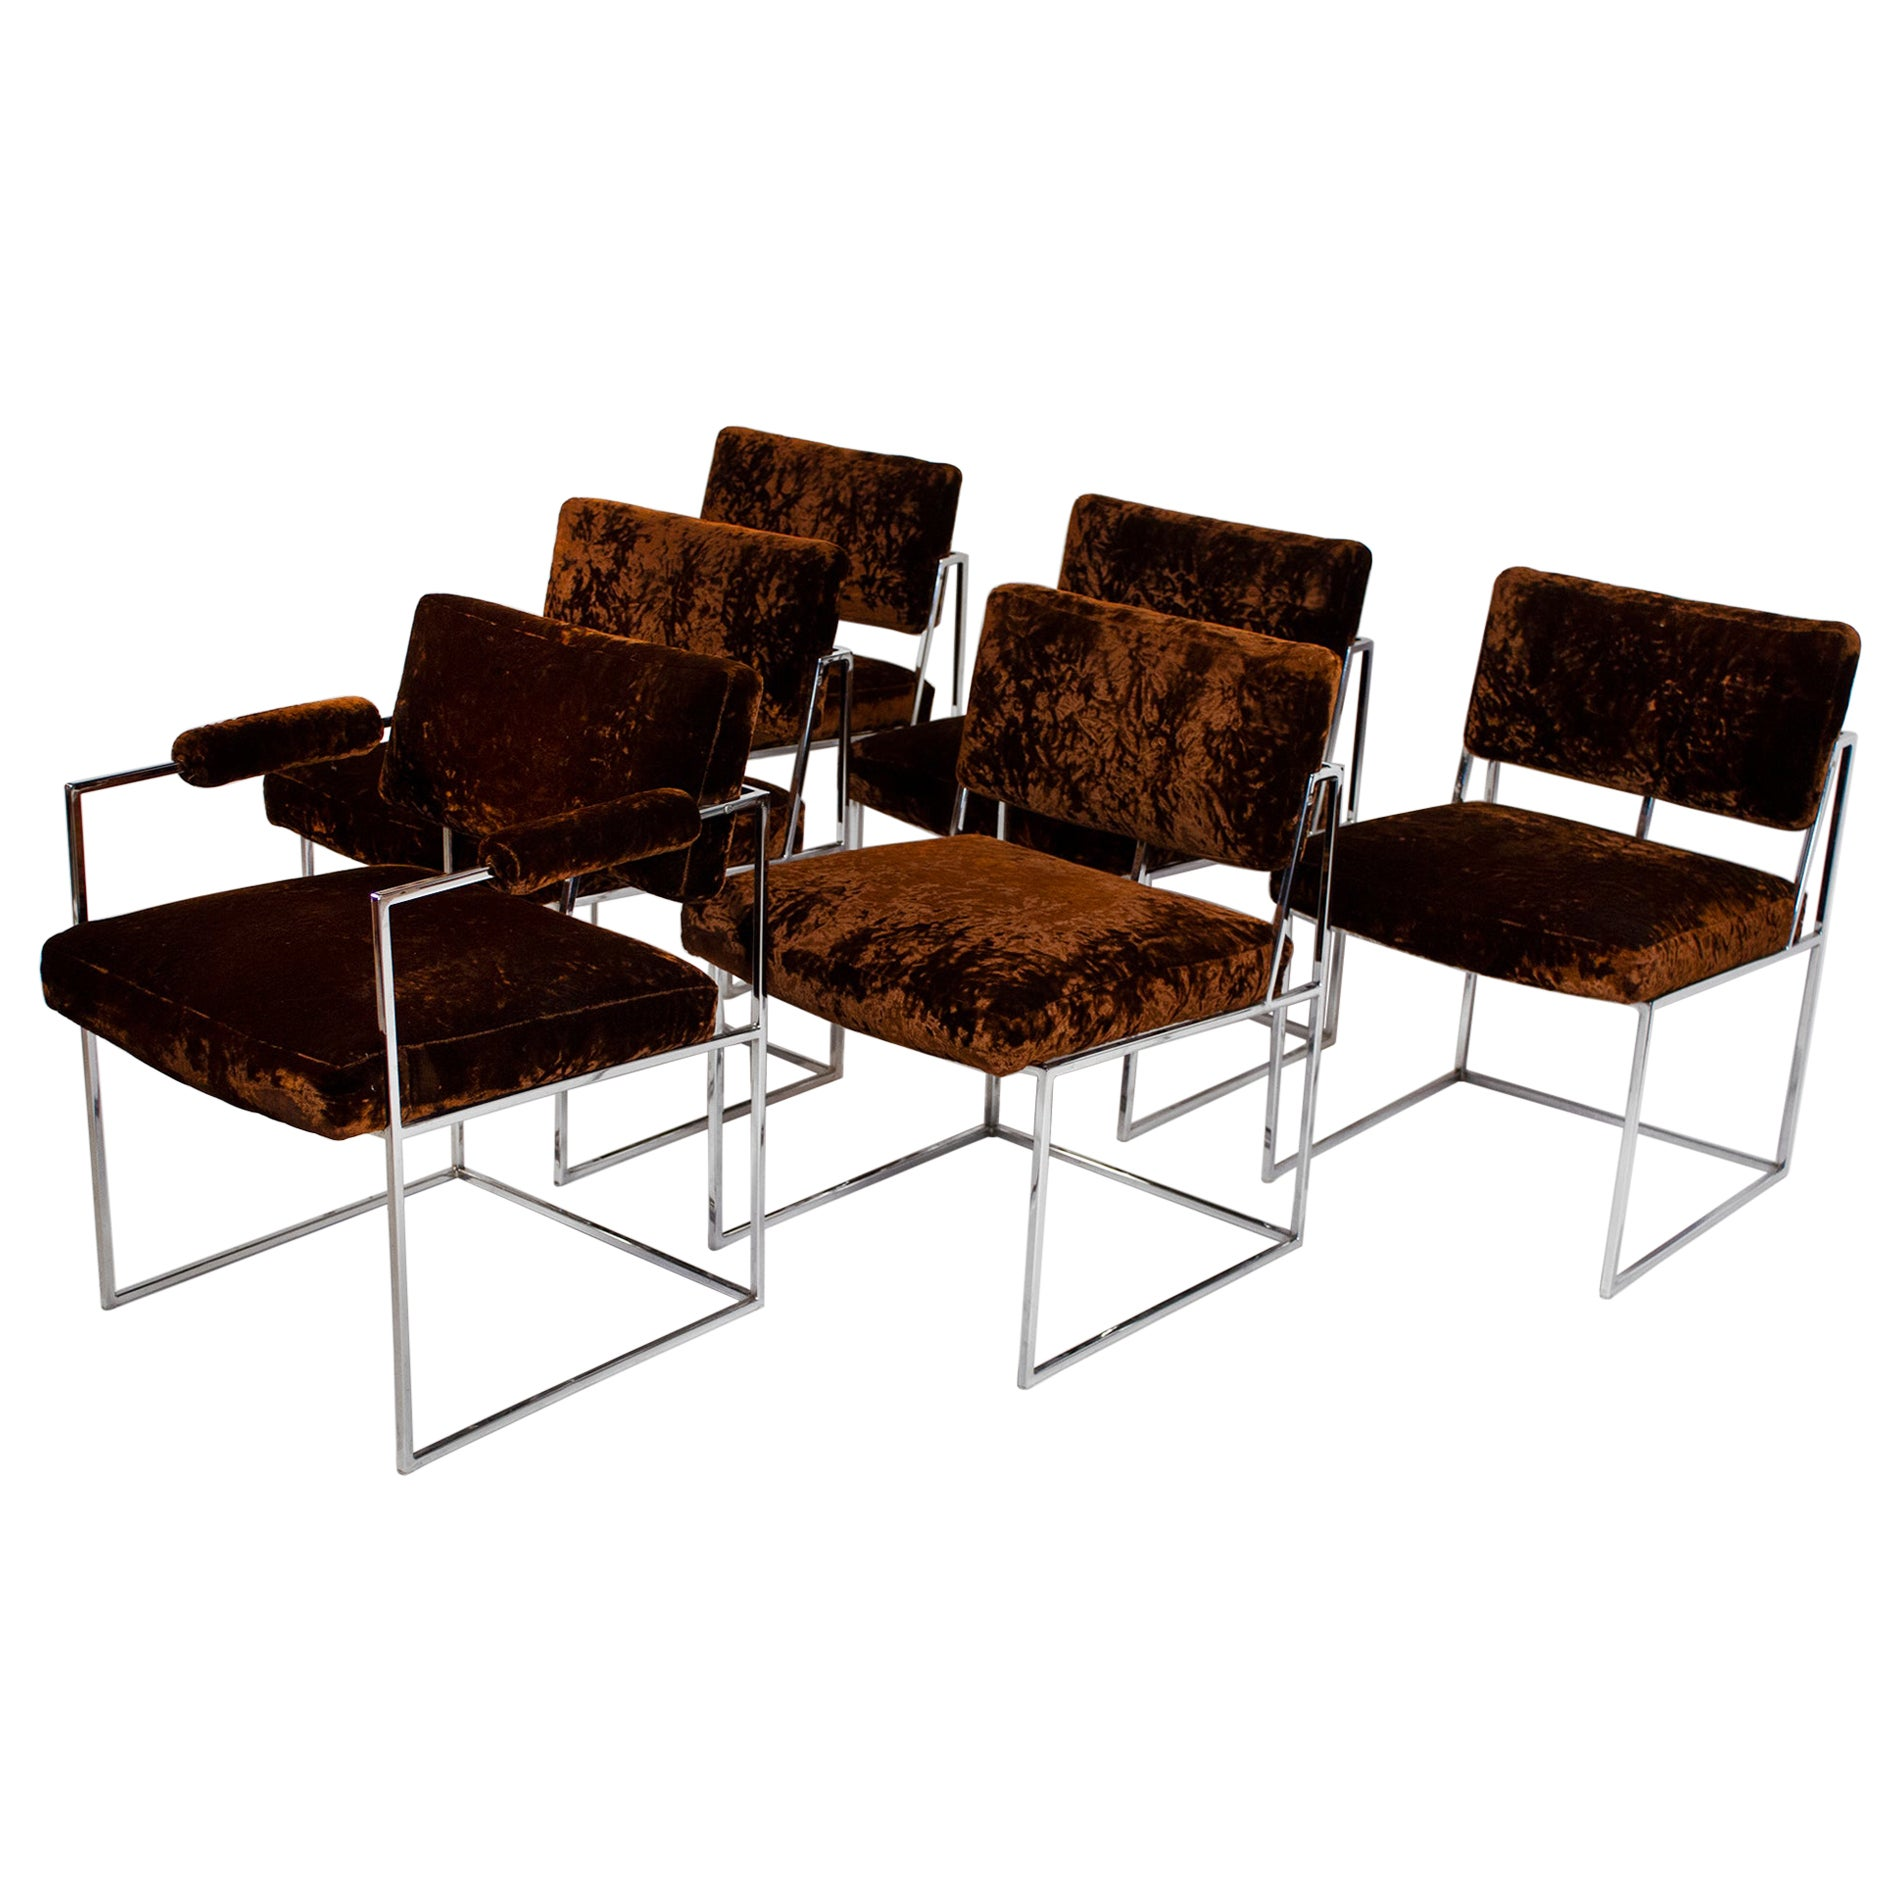 Set of 6 Milo Baughman Dining Chairs for Thayer Coggin 1960s Chrome and Velvet